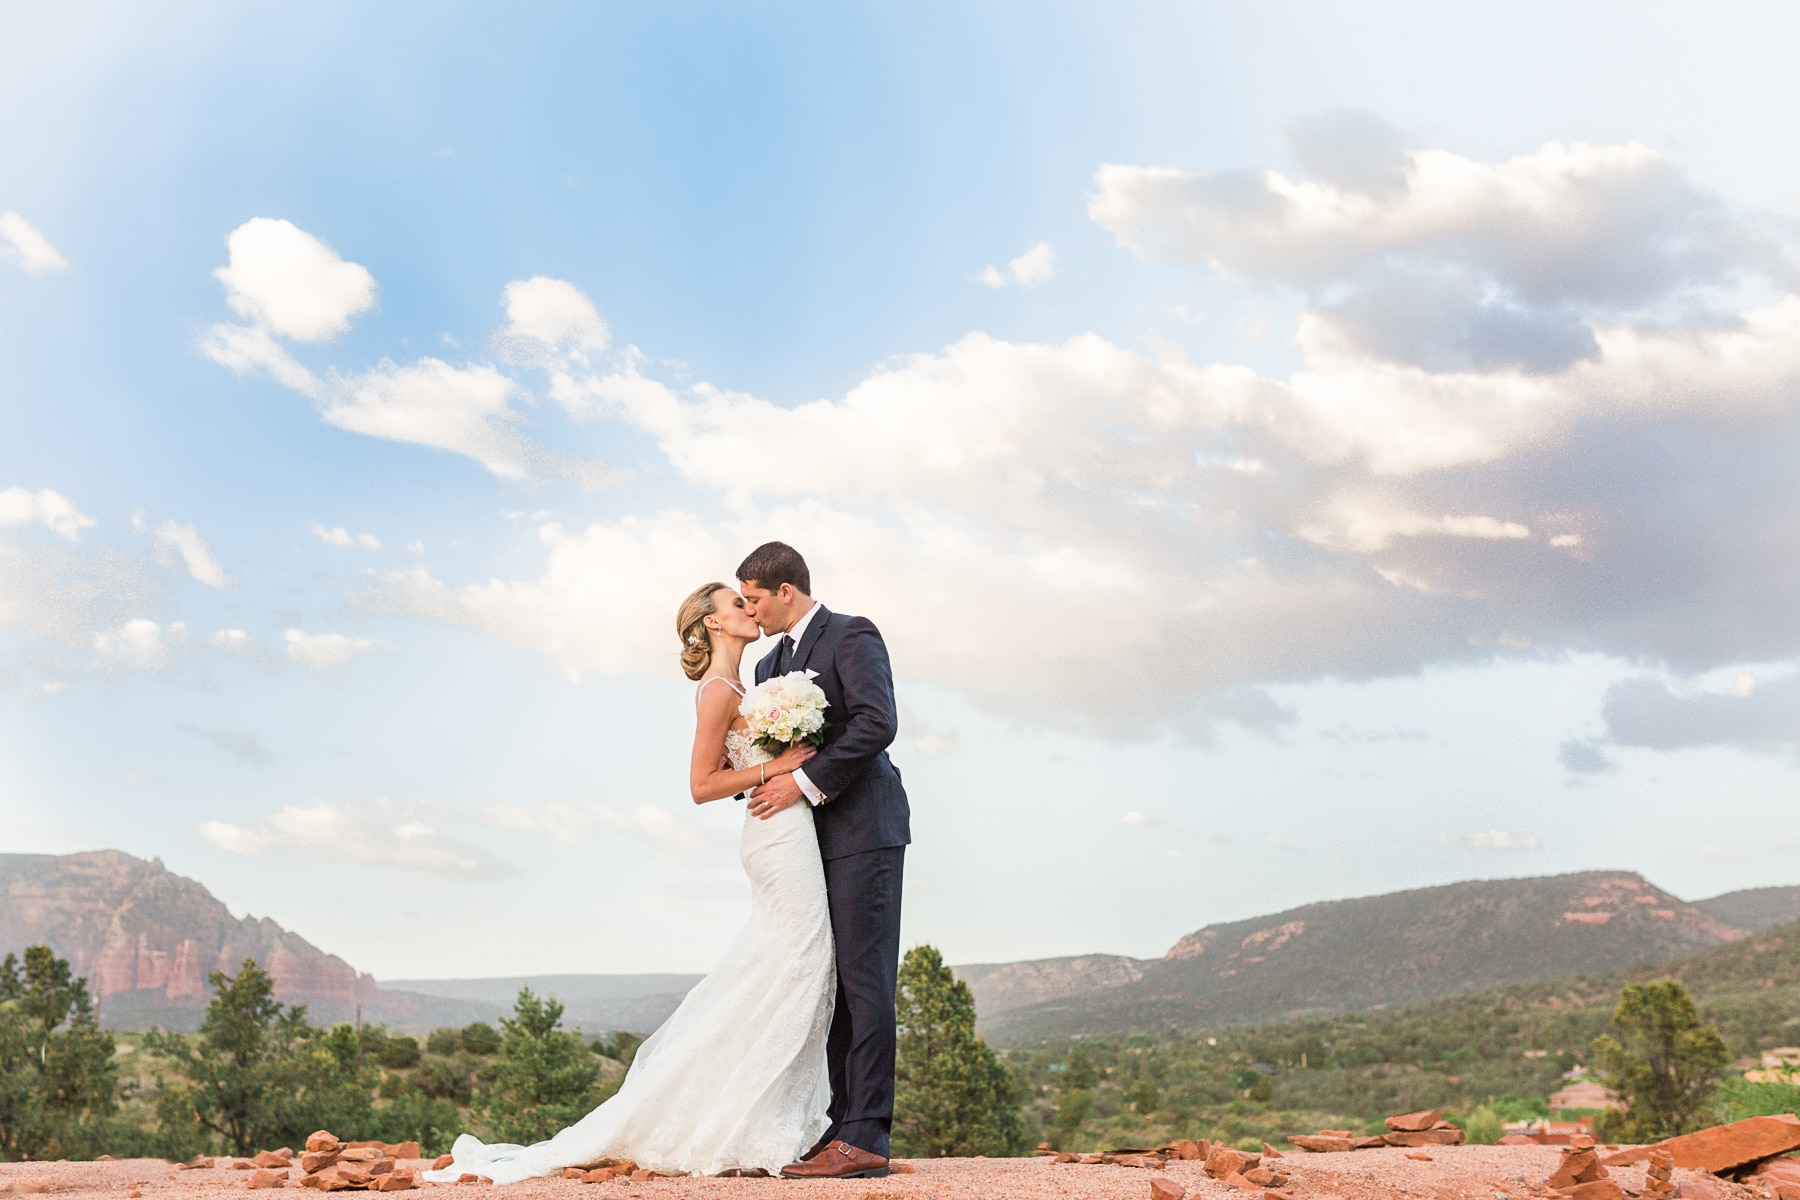 Wedding Photography Arizona: Wedding Photographer